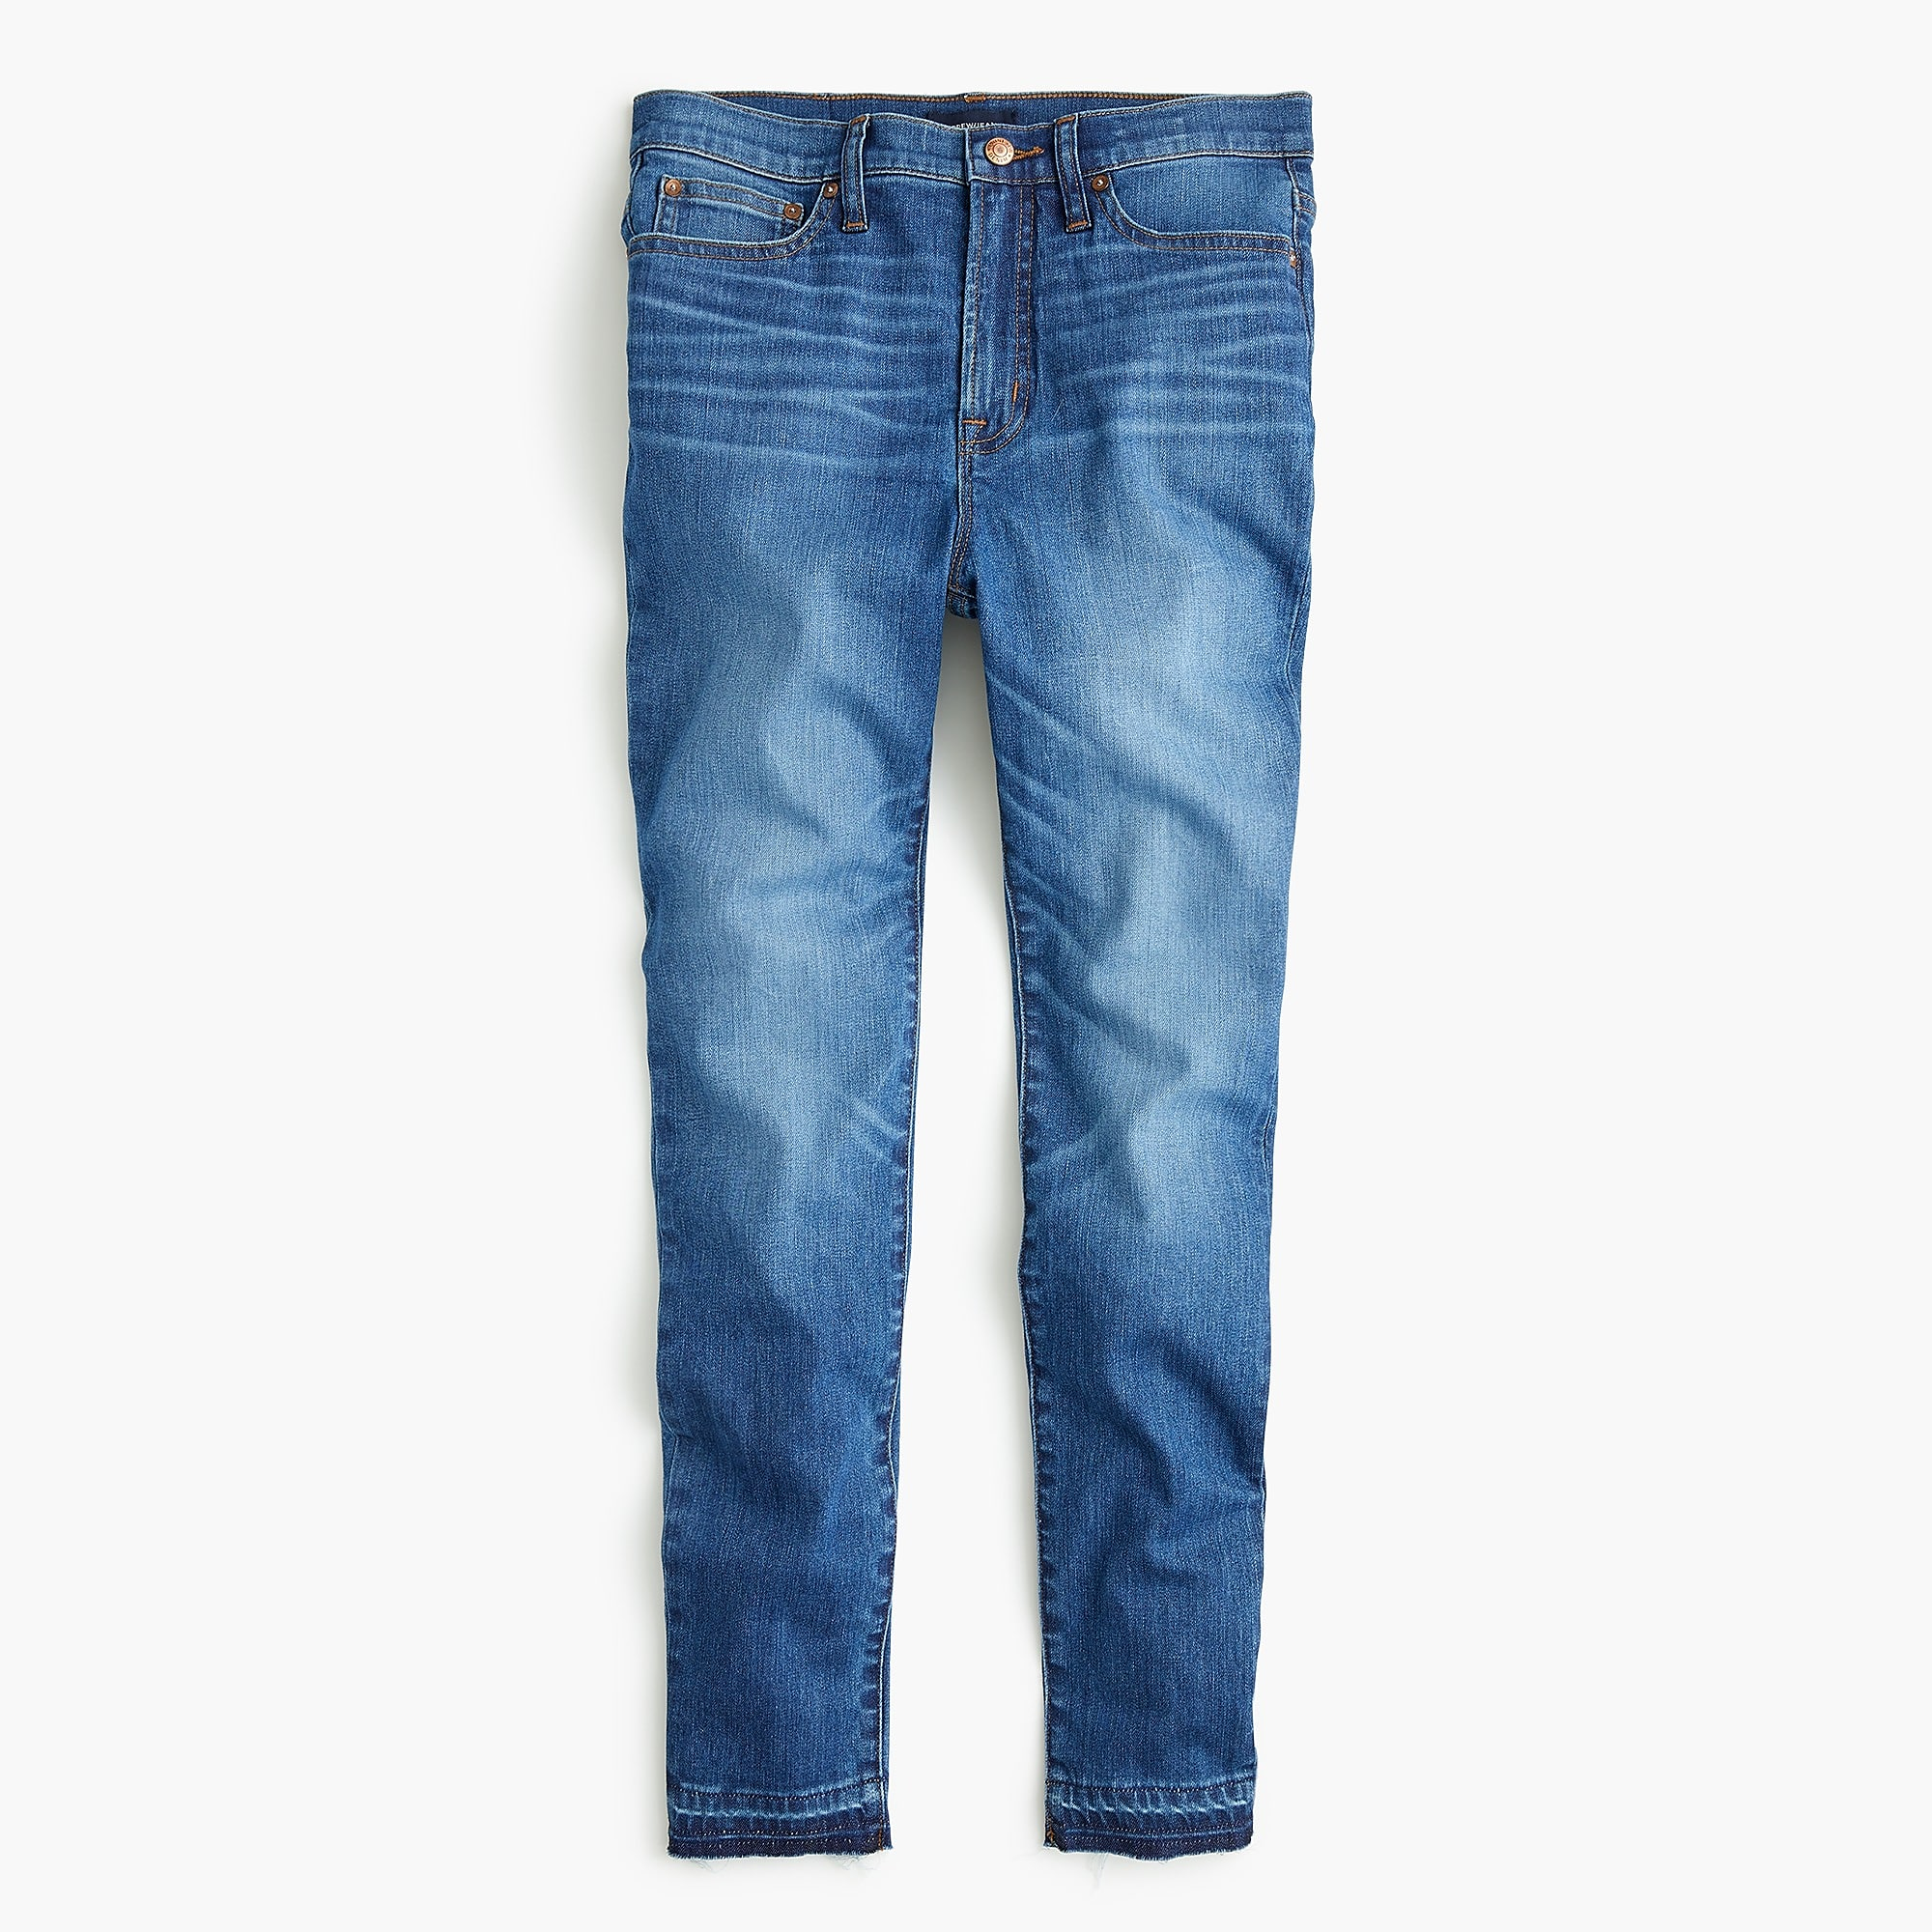 j. crew, skinny jeans, released hem, cropped jeans